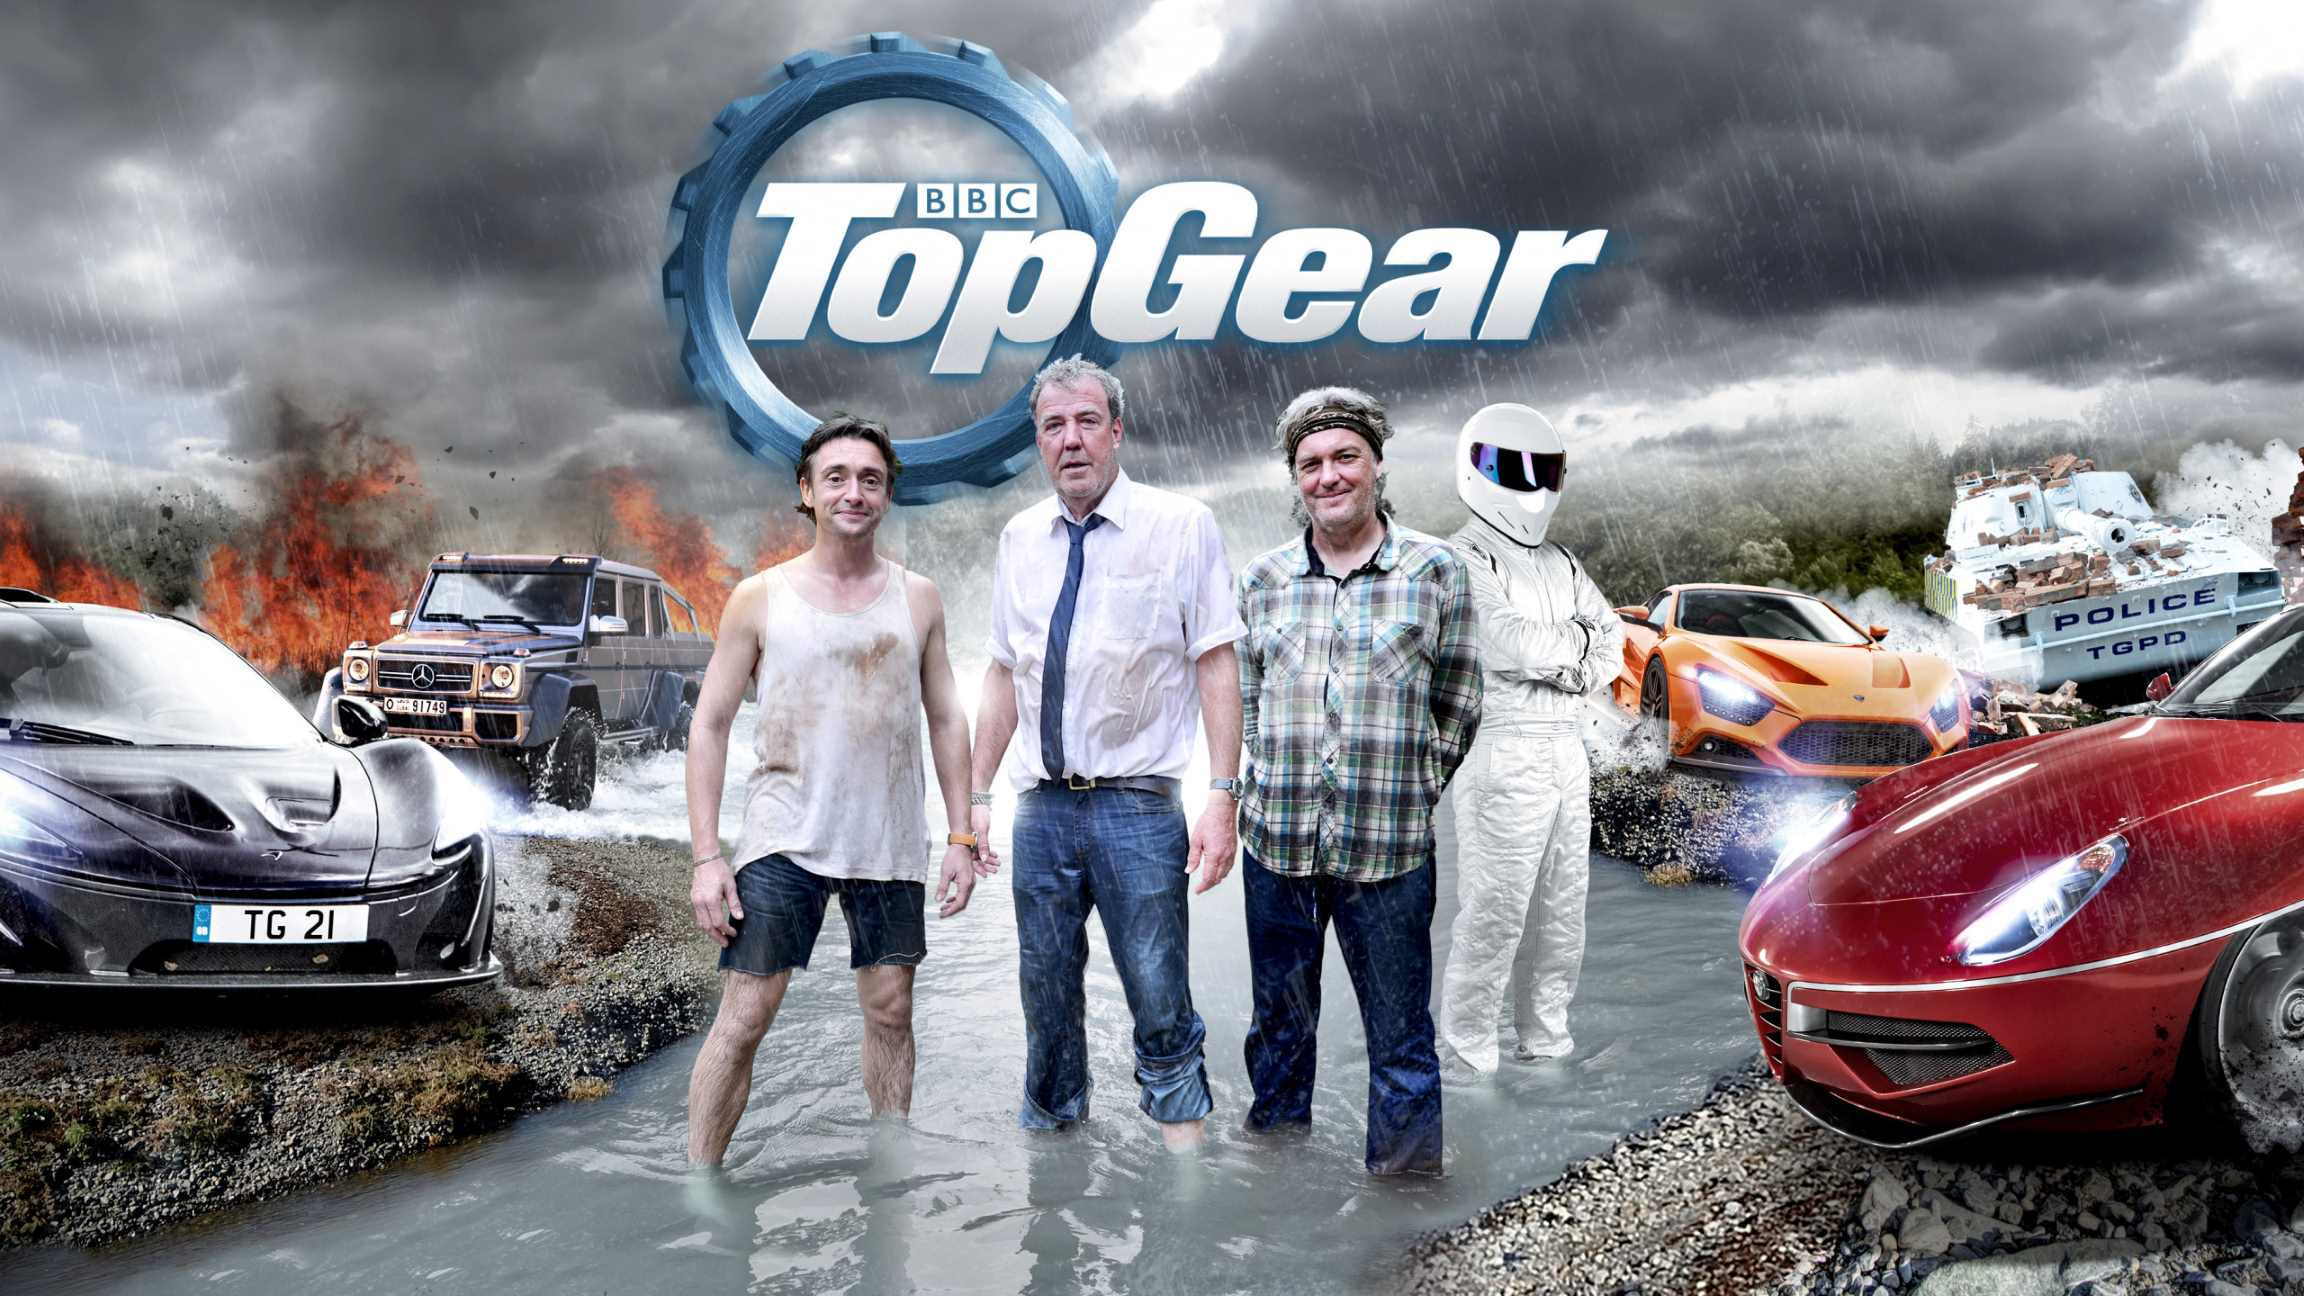 Image Wiki Background Top Gear Wiki Fandom Powered By Wikia